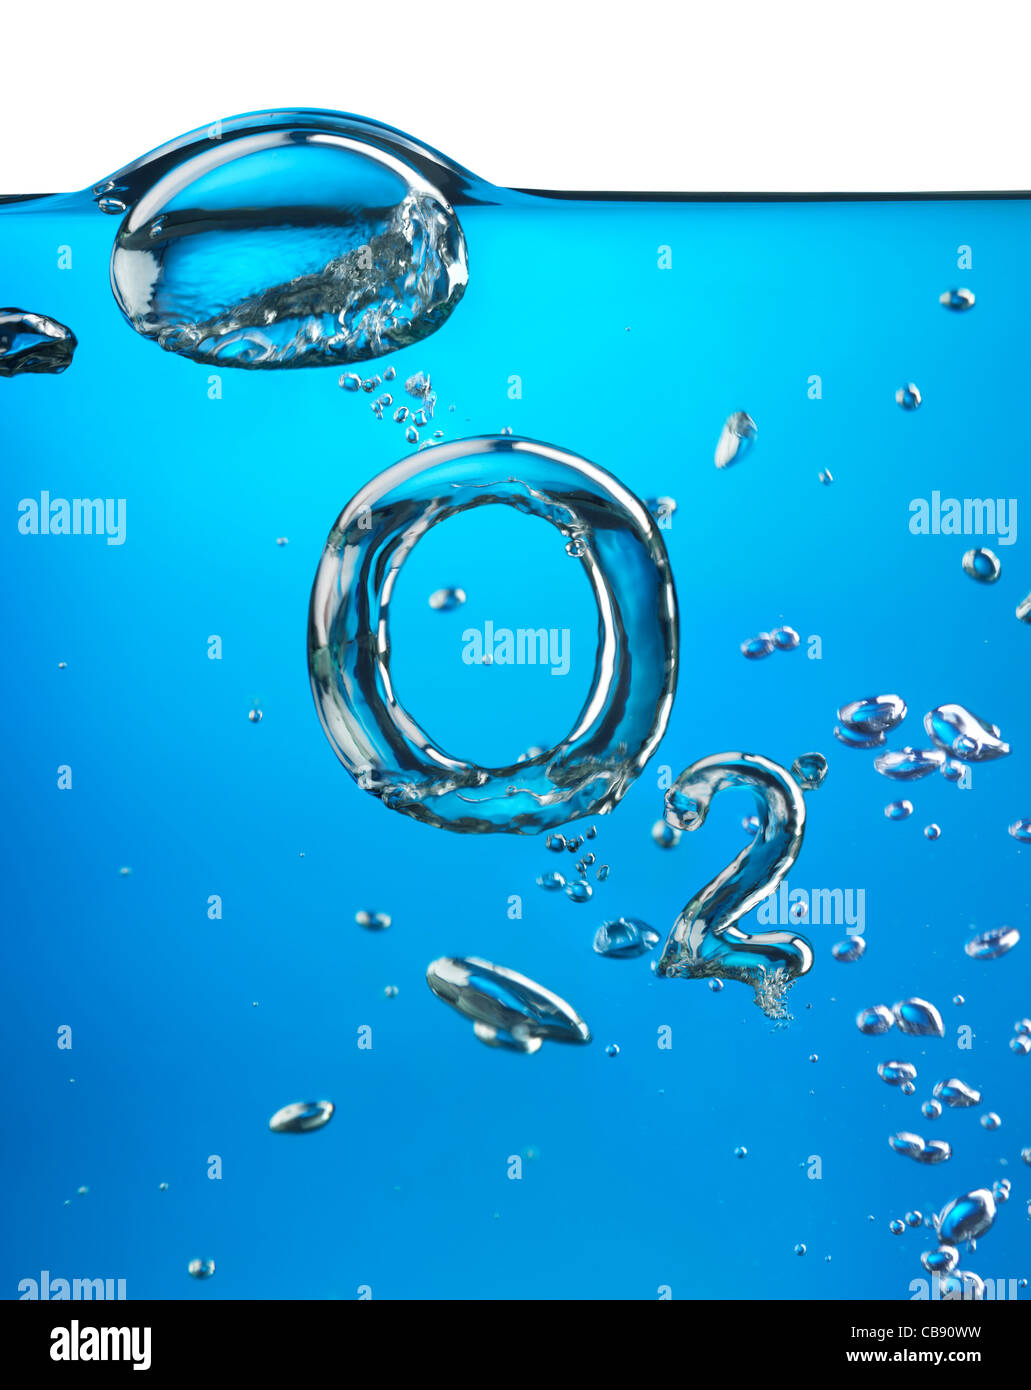 Formula of oxygen O2 with air bubbles underwater on blue background - Stock Image